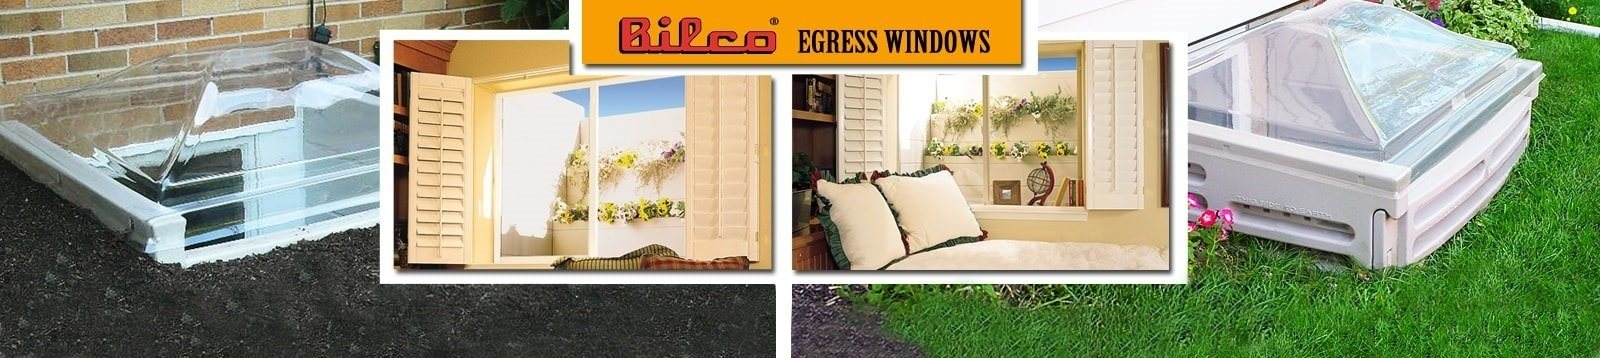 Bilco Egress Windows for Omaha, NE and Western Iowa